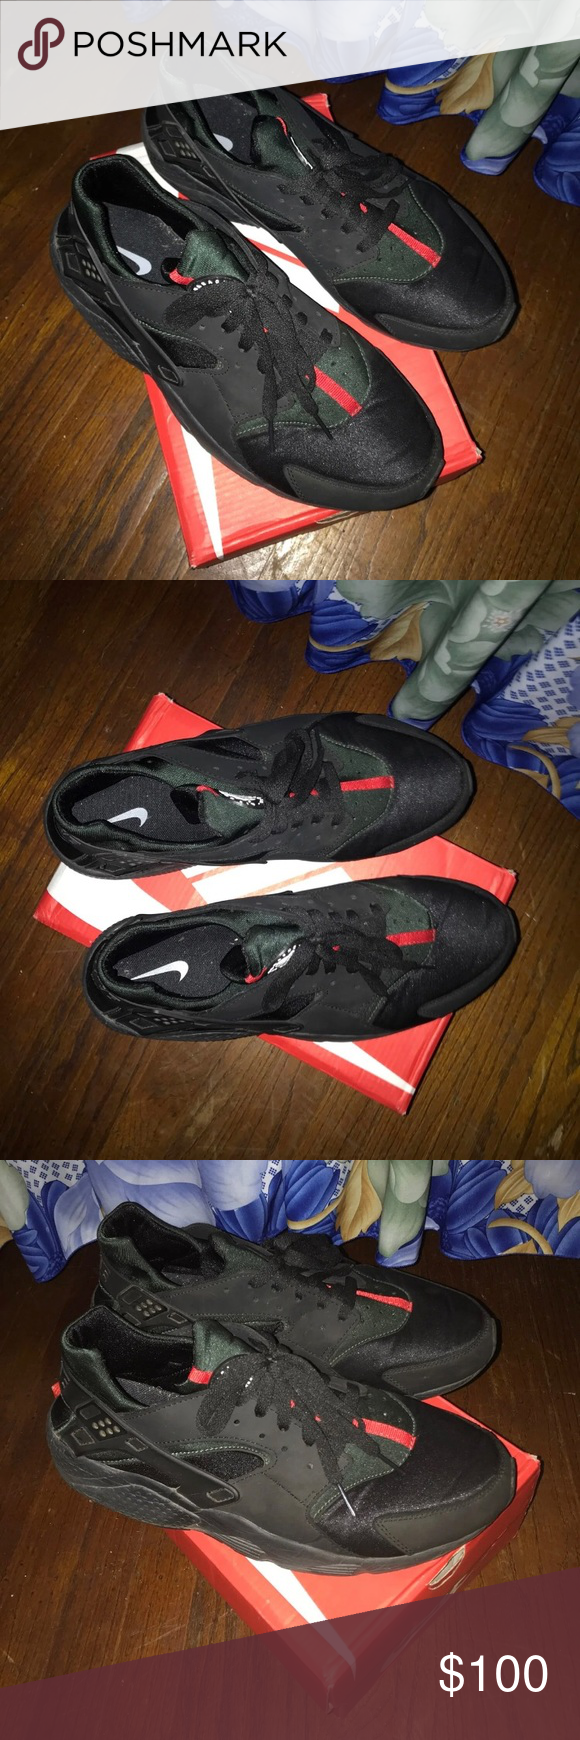 9ab587885822 Customized Nike Huaraches Shoes (Gucci) NIKE HUARACHES (GUCCI CUSTOMED) -  message me